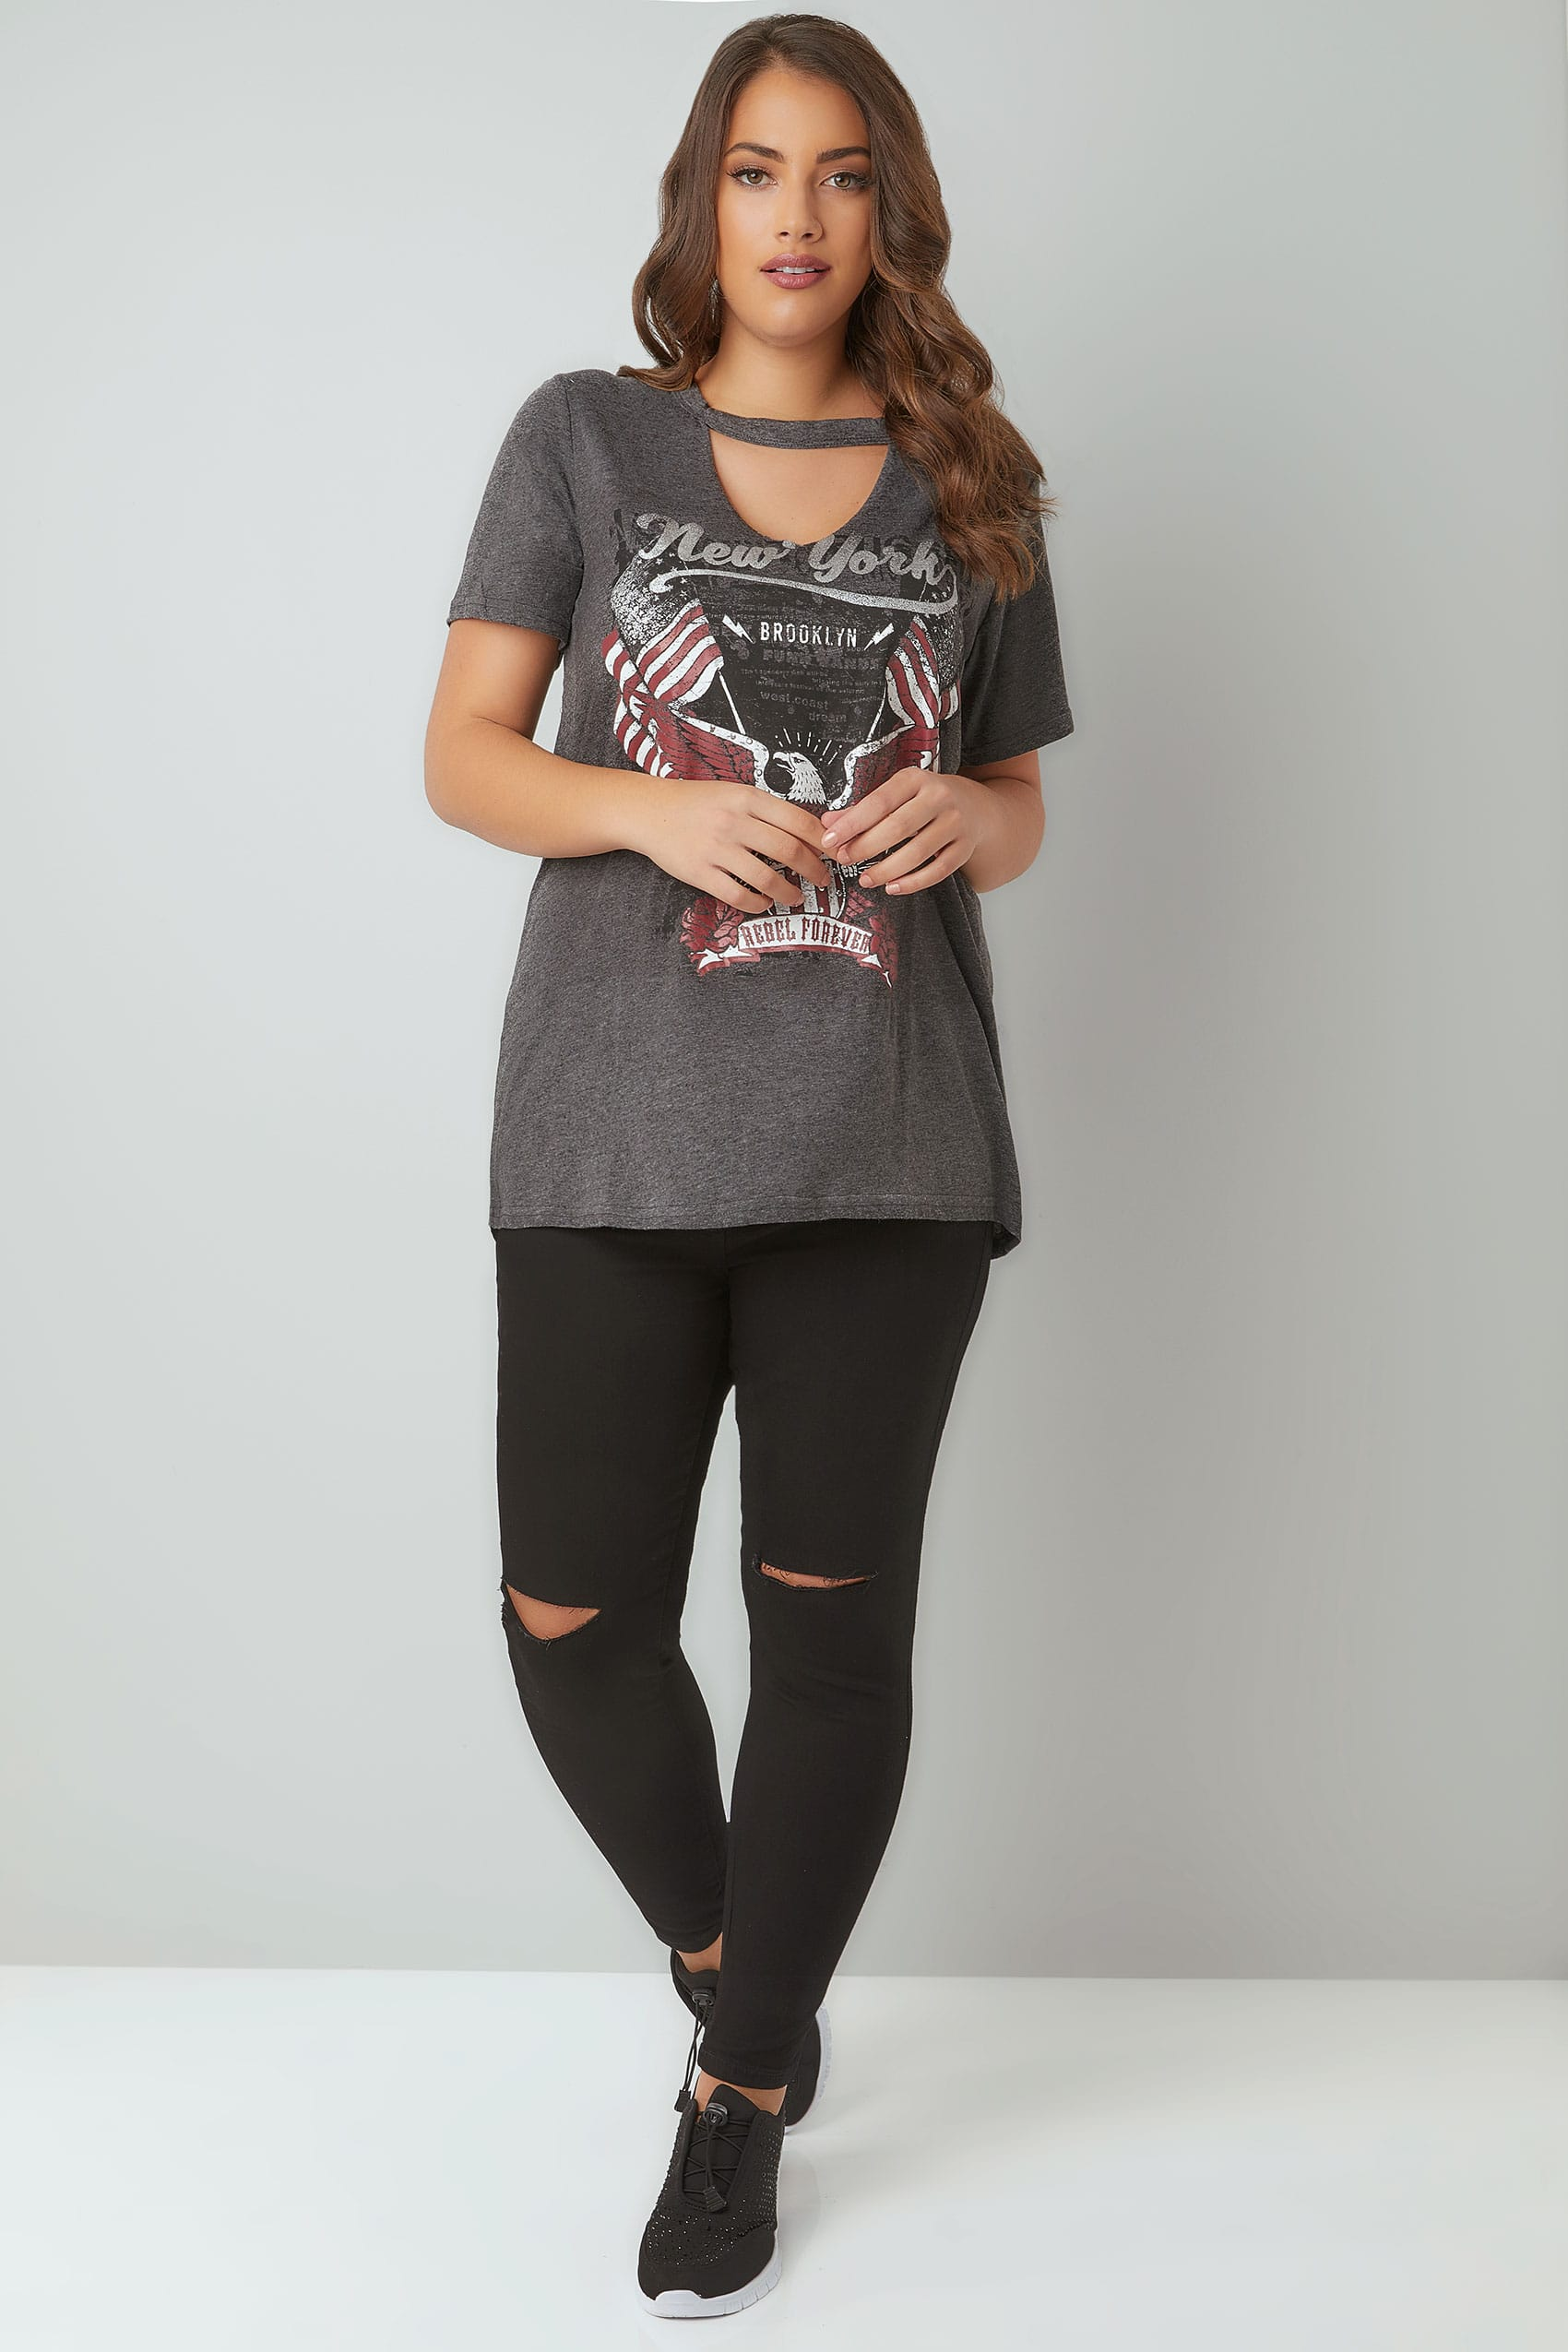 grau longline t shirt mit choker in gro en gr en 44 64. Black Bedroom Furniture Sets. Home Design Ideas